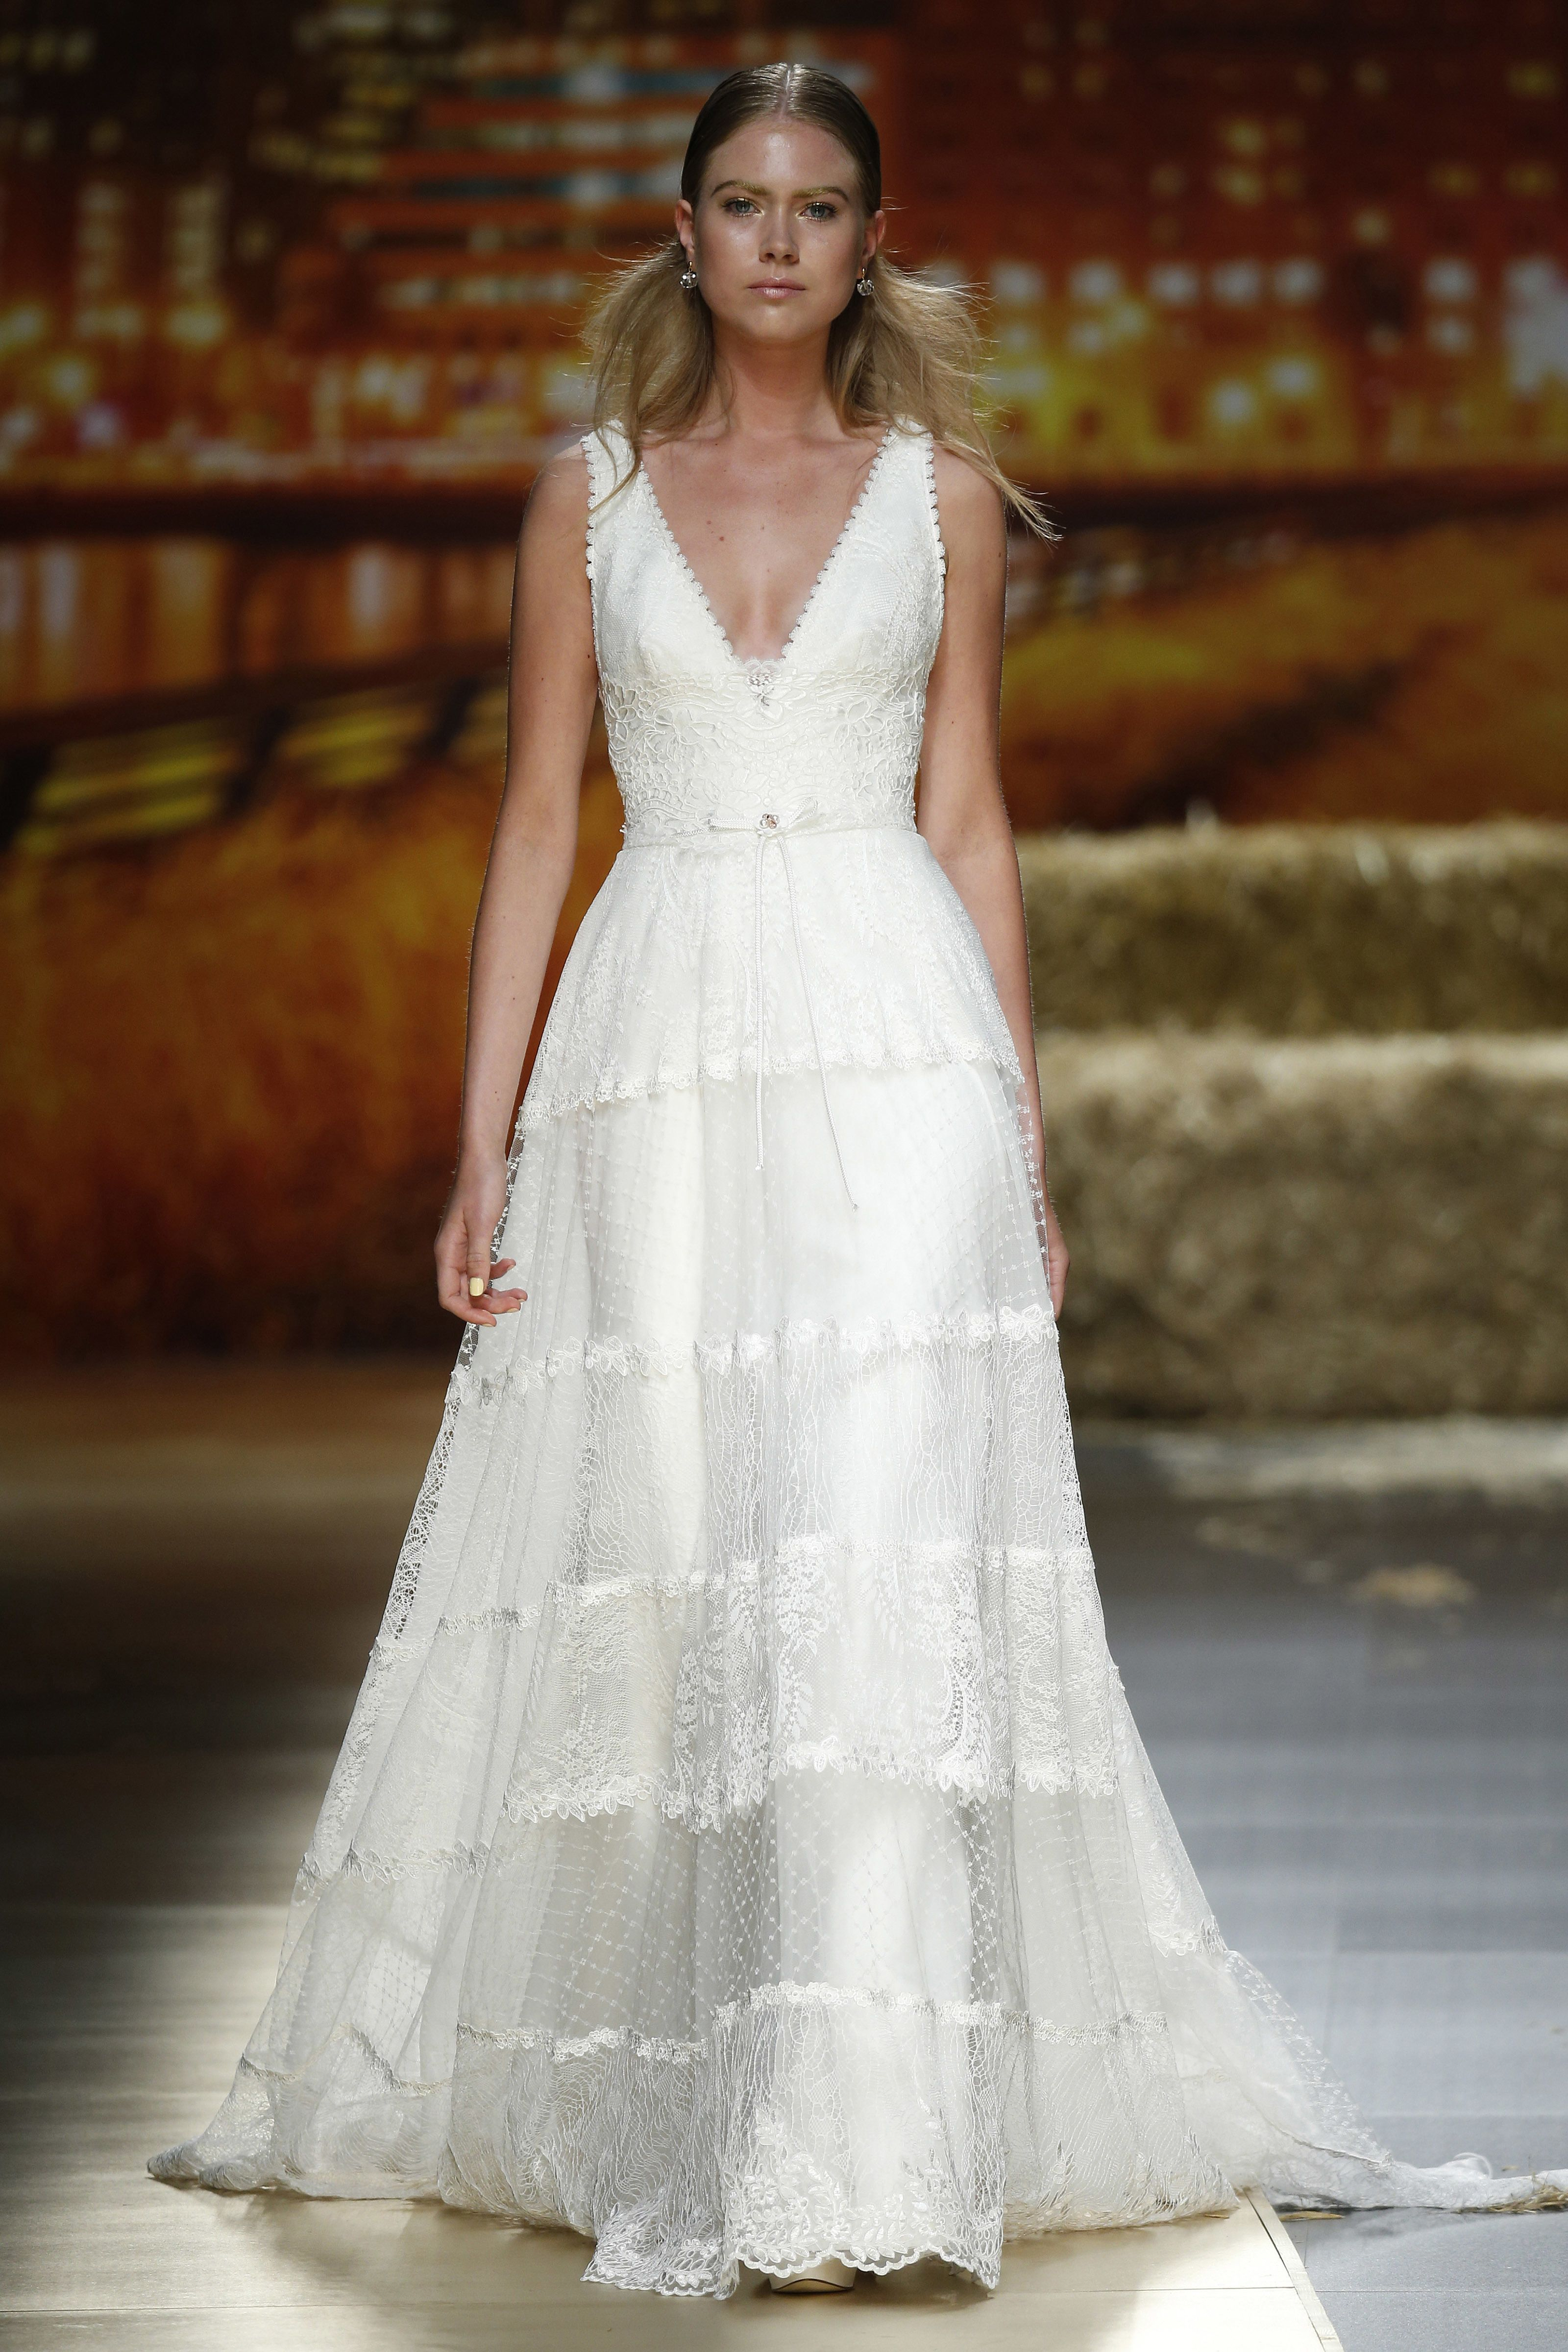 Prettiest wedding dresses from barcelonas bridal week pretty prettiest wedding dresses from barcelonas bridal week ombrellifo Choice Image